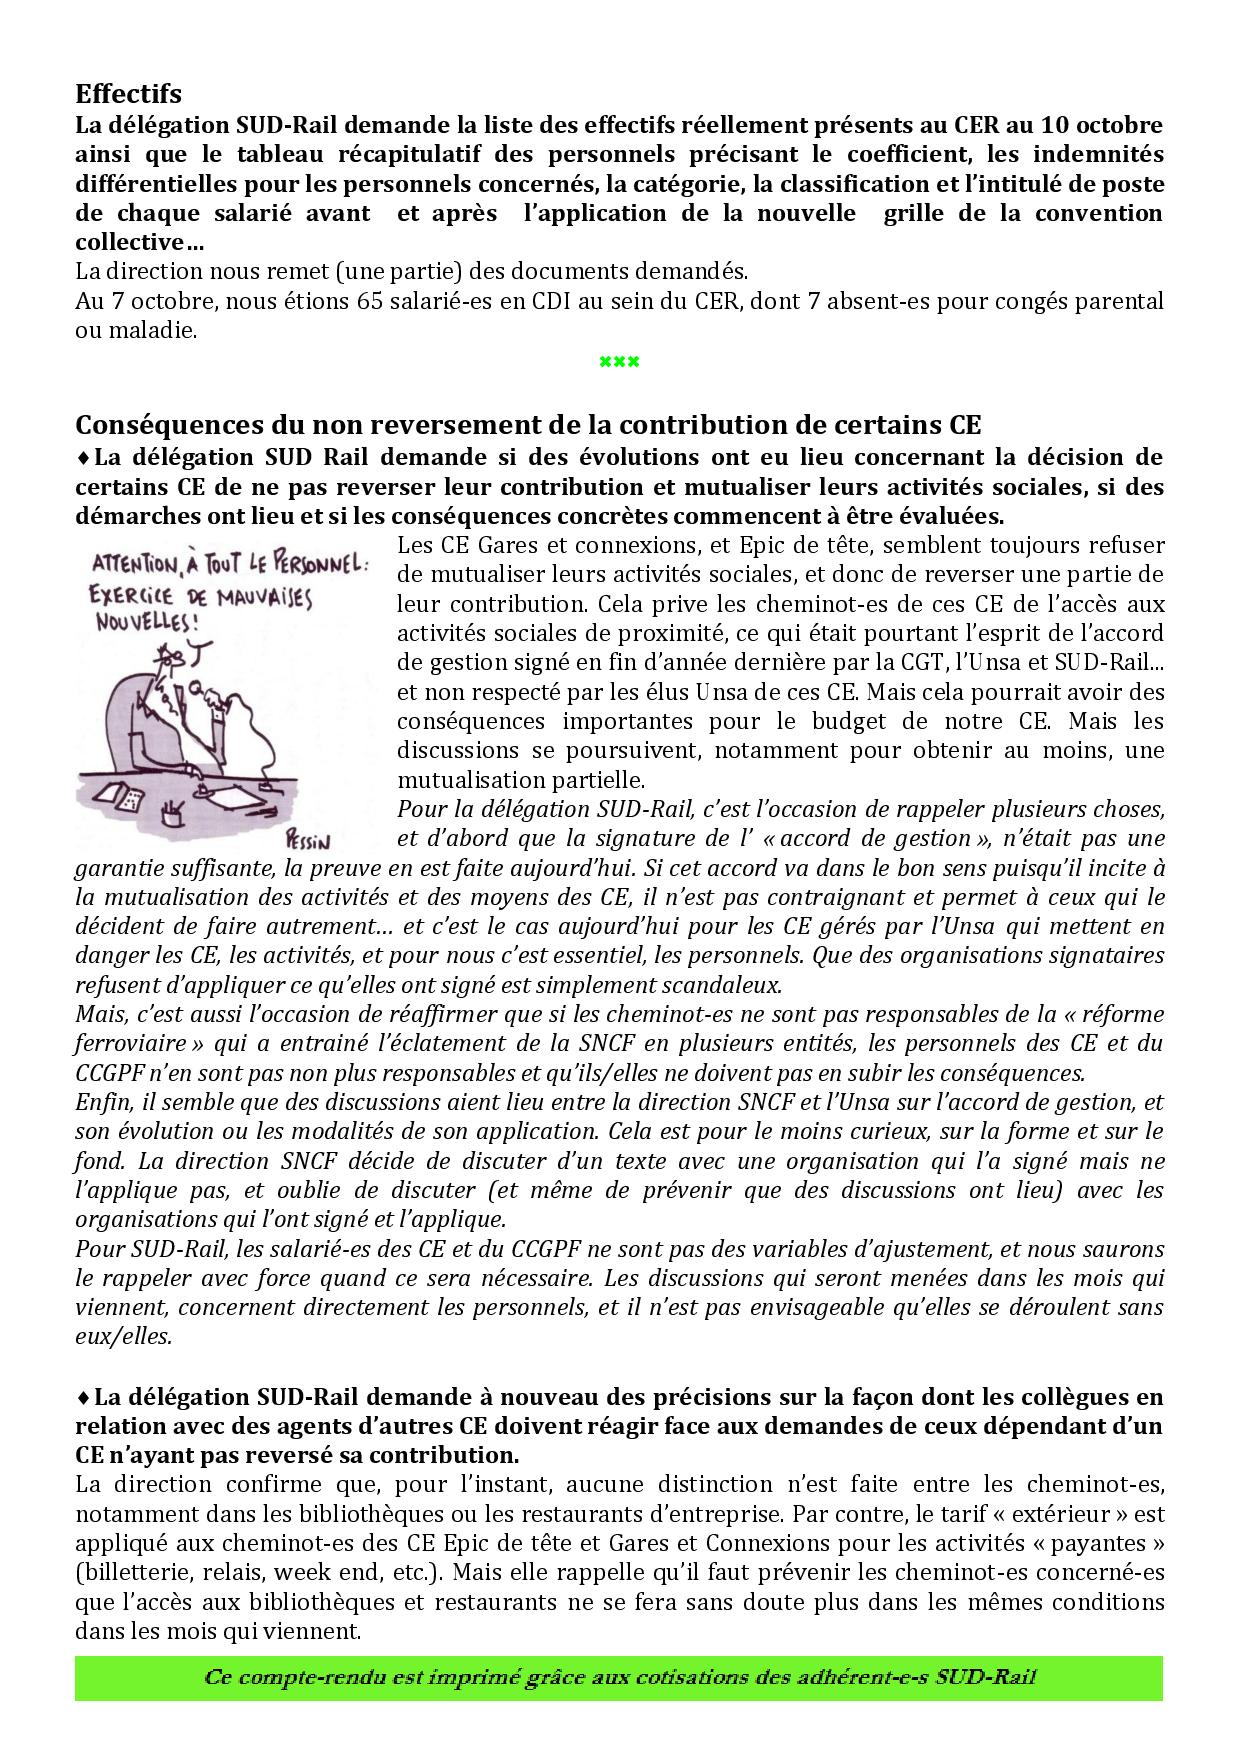 personnel-cer-crdp-10-2016-page-002